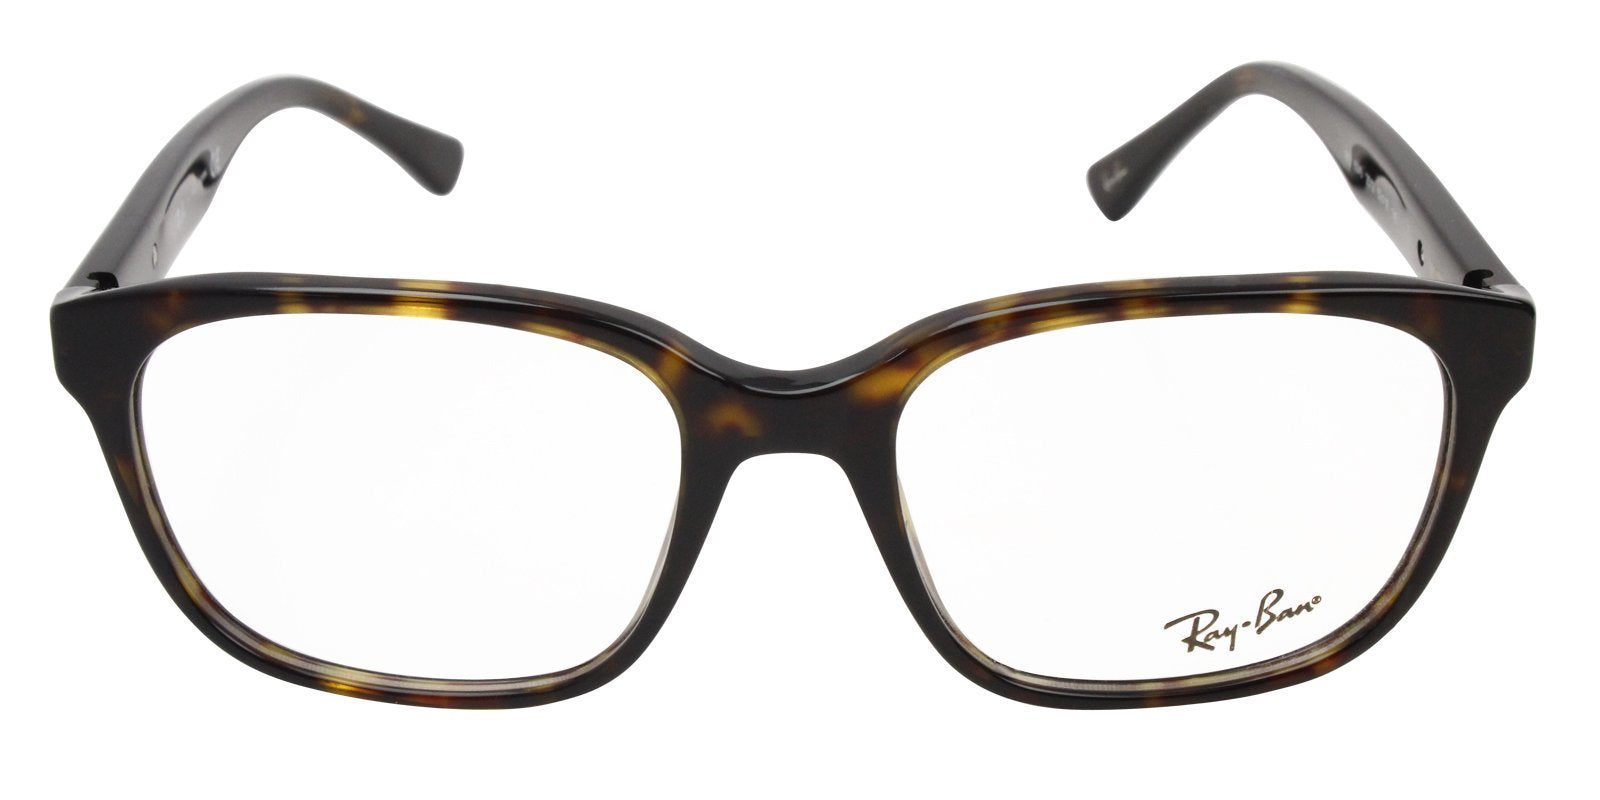 Ray Ban Rx - RX5340 Tortoise Rectangular Unisex Eyeglasses - 53mm-Eyeglasses-Designer Eyes